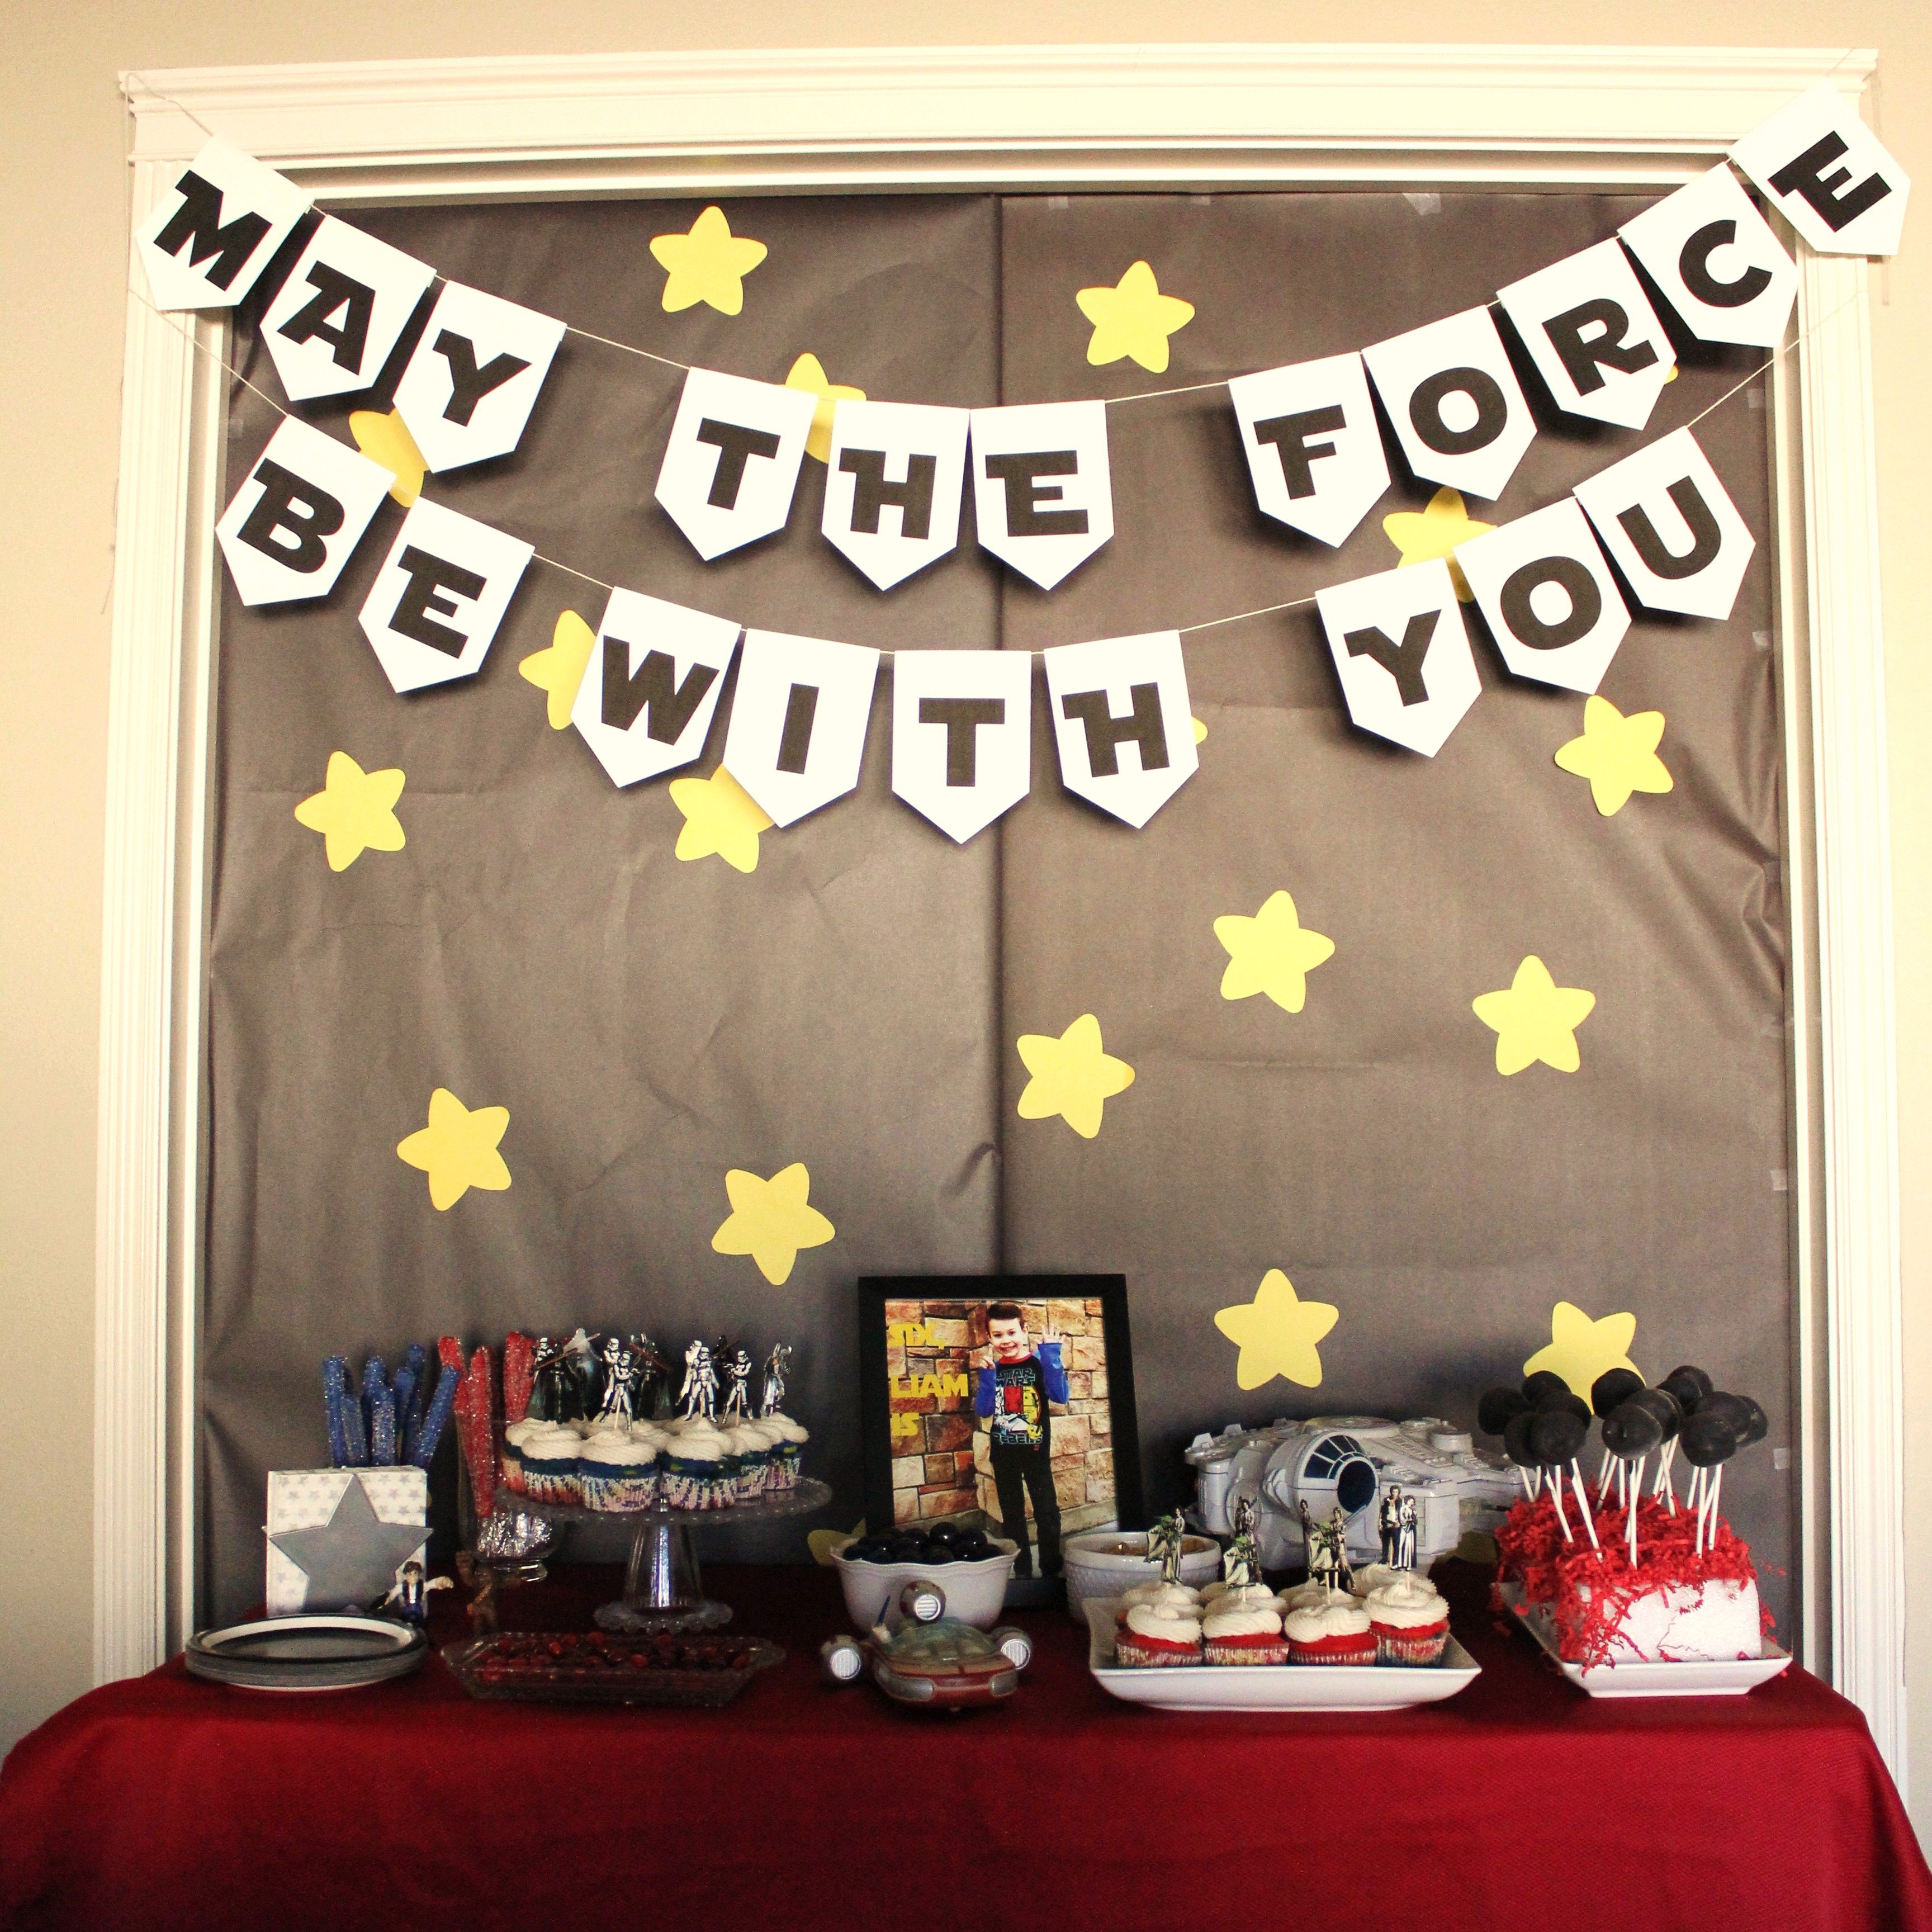 Tips For Planning A Star Wars Party With Free Printables Star Wars Birthday Party Star Wars Theme Party Birthday Party Printables